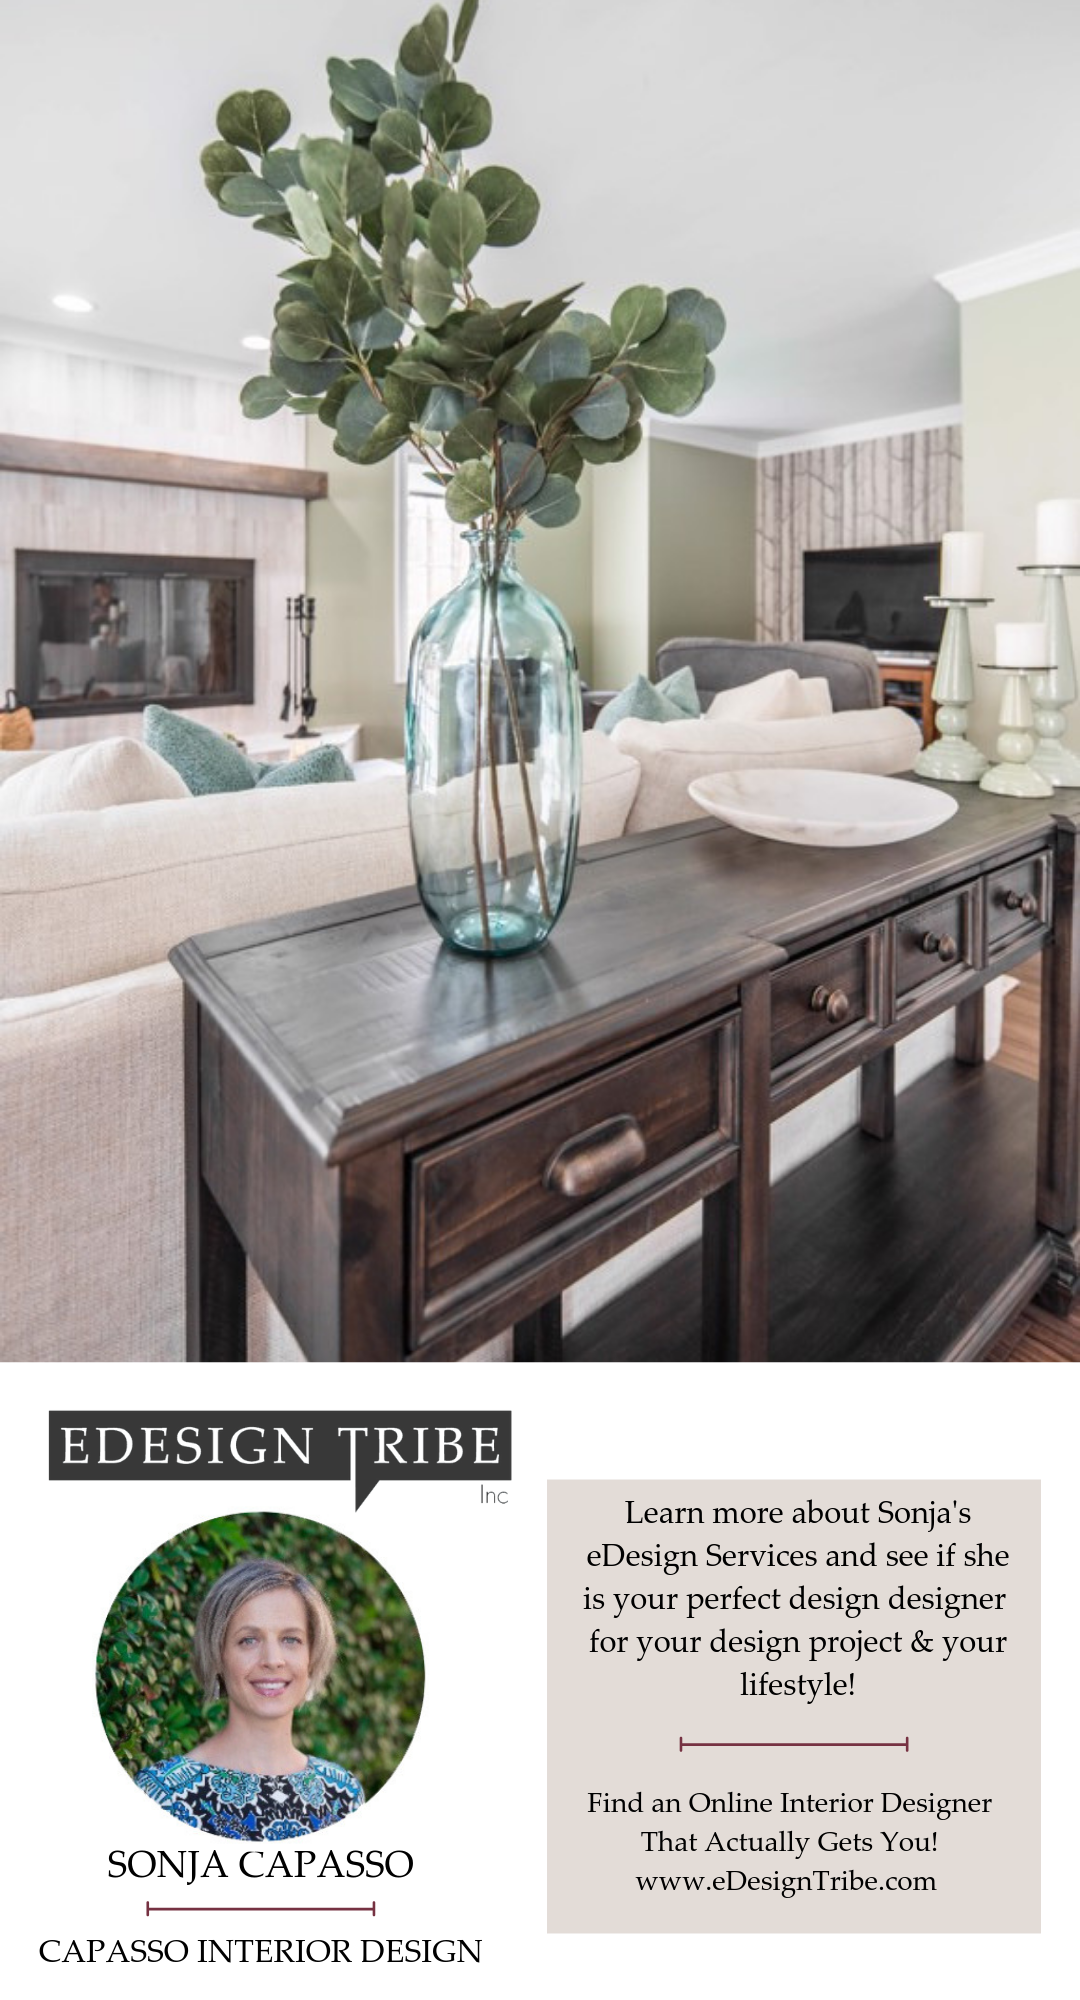 My designs are uncluttered and polished. I strive for bright, airy, and  cheerful interiors, where serenity and peace always take the precedence.  My design will always be sophisticated, somewhat glamorous, a bit edgy,  with bold accents, yet still remain soft and comfortable.   Kitchen, Living Rooms, Master Bedroom,  Nursery, Open concepts, Play rooms S,mall s